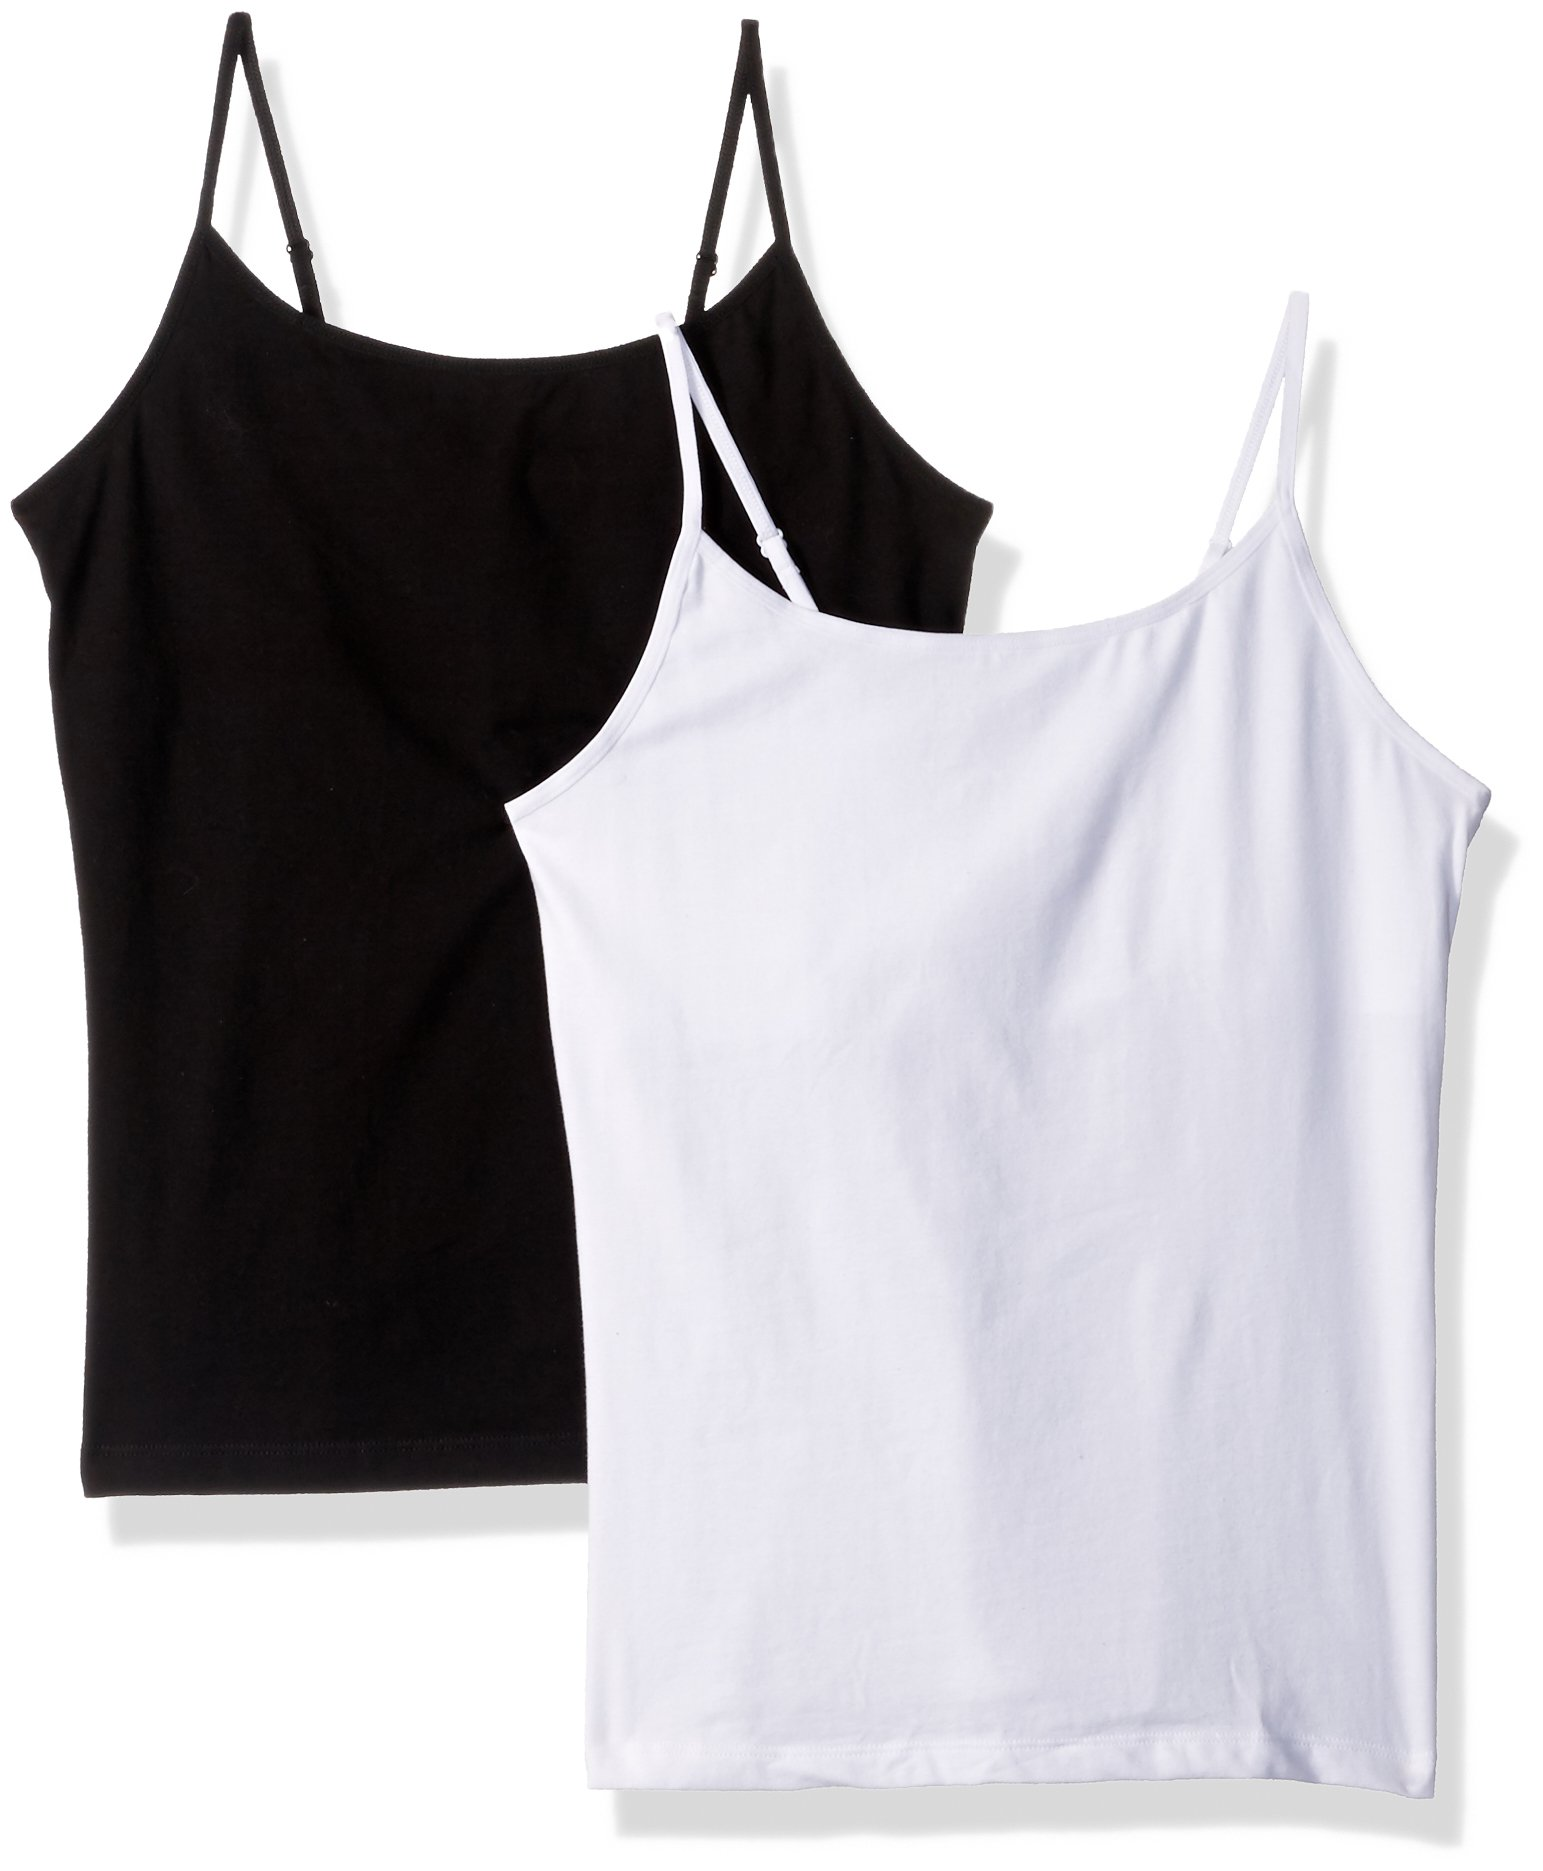 The Children's Place Toddler Girls' Cami, White 83433 (Pack of 2), XXL(16)